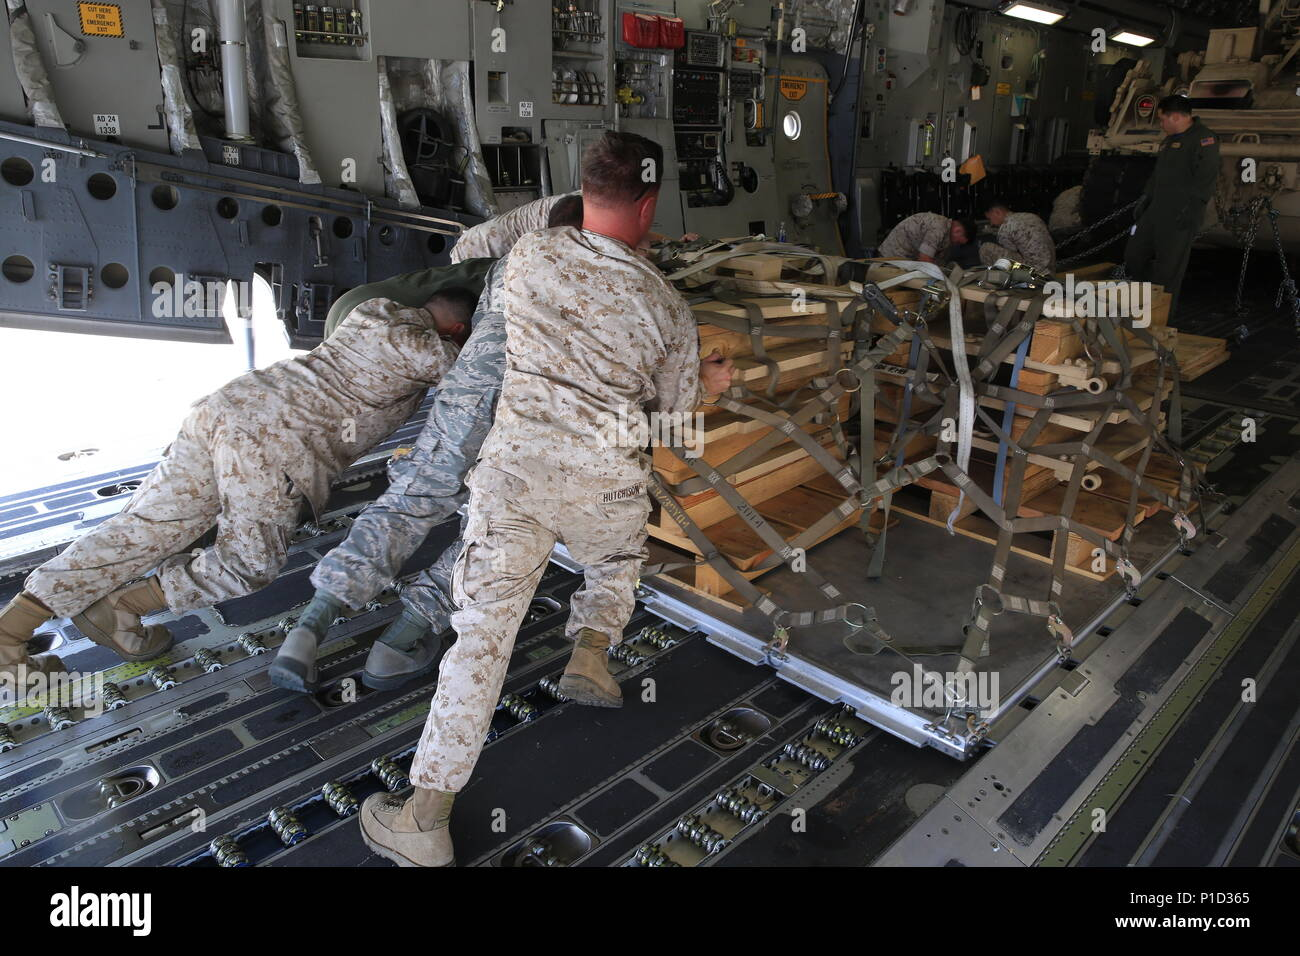 U.S. Marines and Airmen work hand-in-hand to load a pallet, filled with an M-88A2 HERCULES' armored side skirts and front winch aboard the C-17 Globemaster III at March Air Reserve Base, Calif., Oct. 14, 2016. The C-17 flew to Marine Corps Air Ground Combat Center Twentynine Palms, Calif., to deliver the M-88A2 recovery vehicle for use by Combat Logistics Company 13. - Stock Image